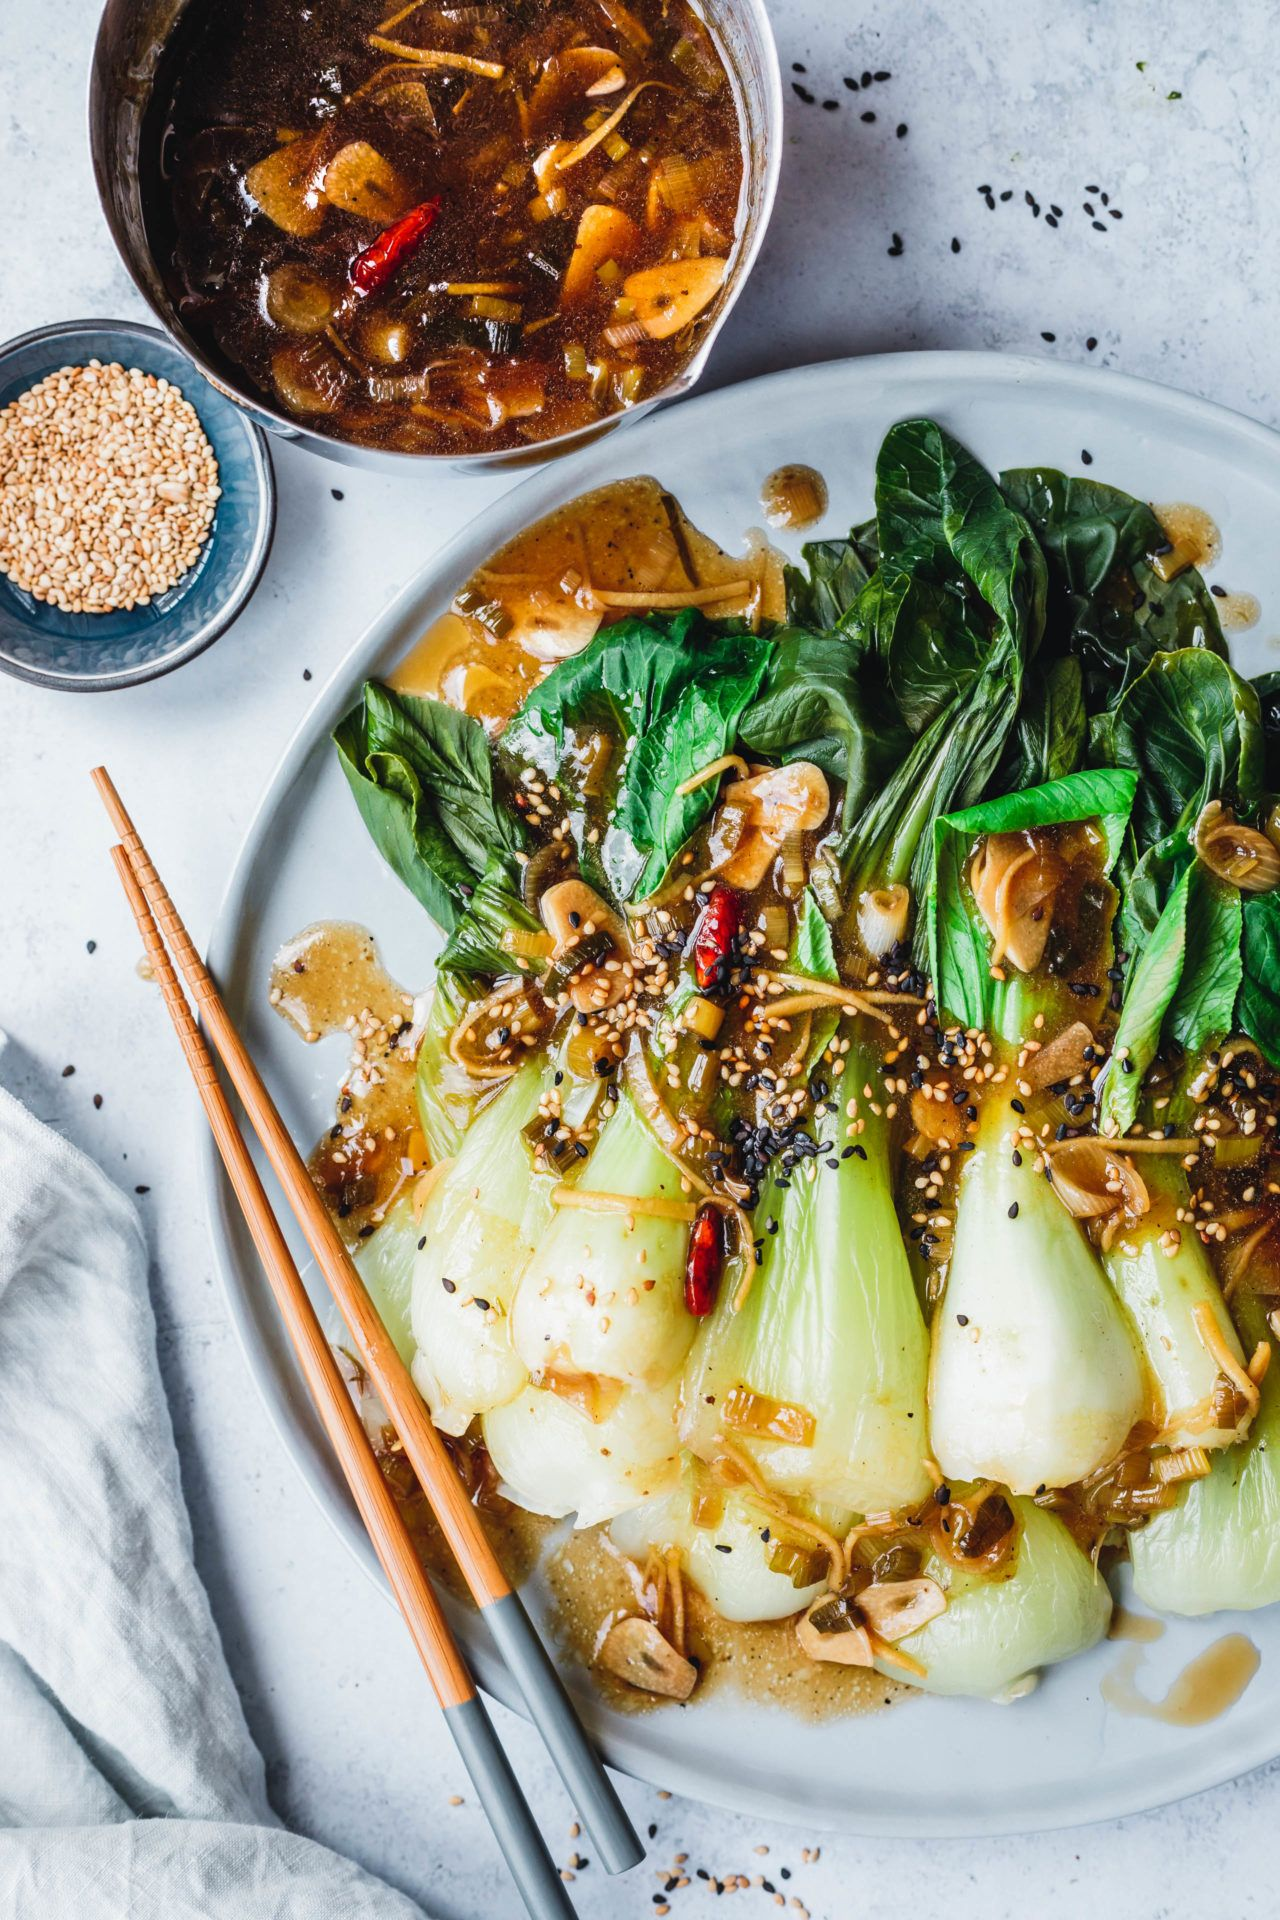 Gedämpfter Pak Choi mit Knoblauch-Ingwer-Sauce · Eat this! Food Blog #chinesemeals